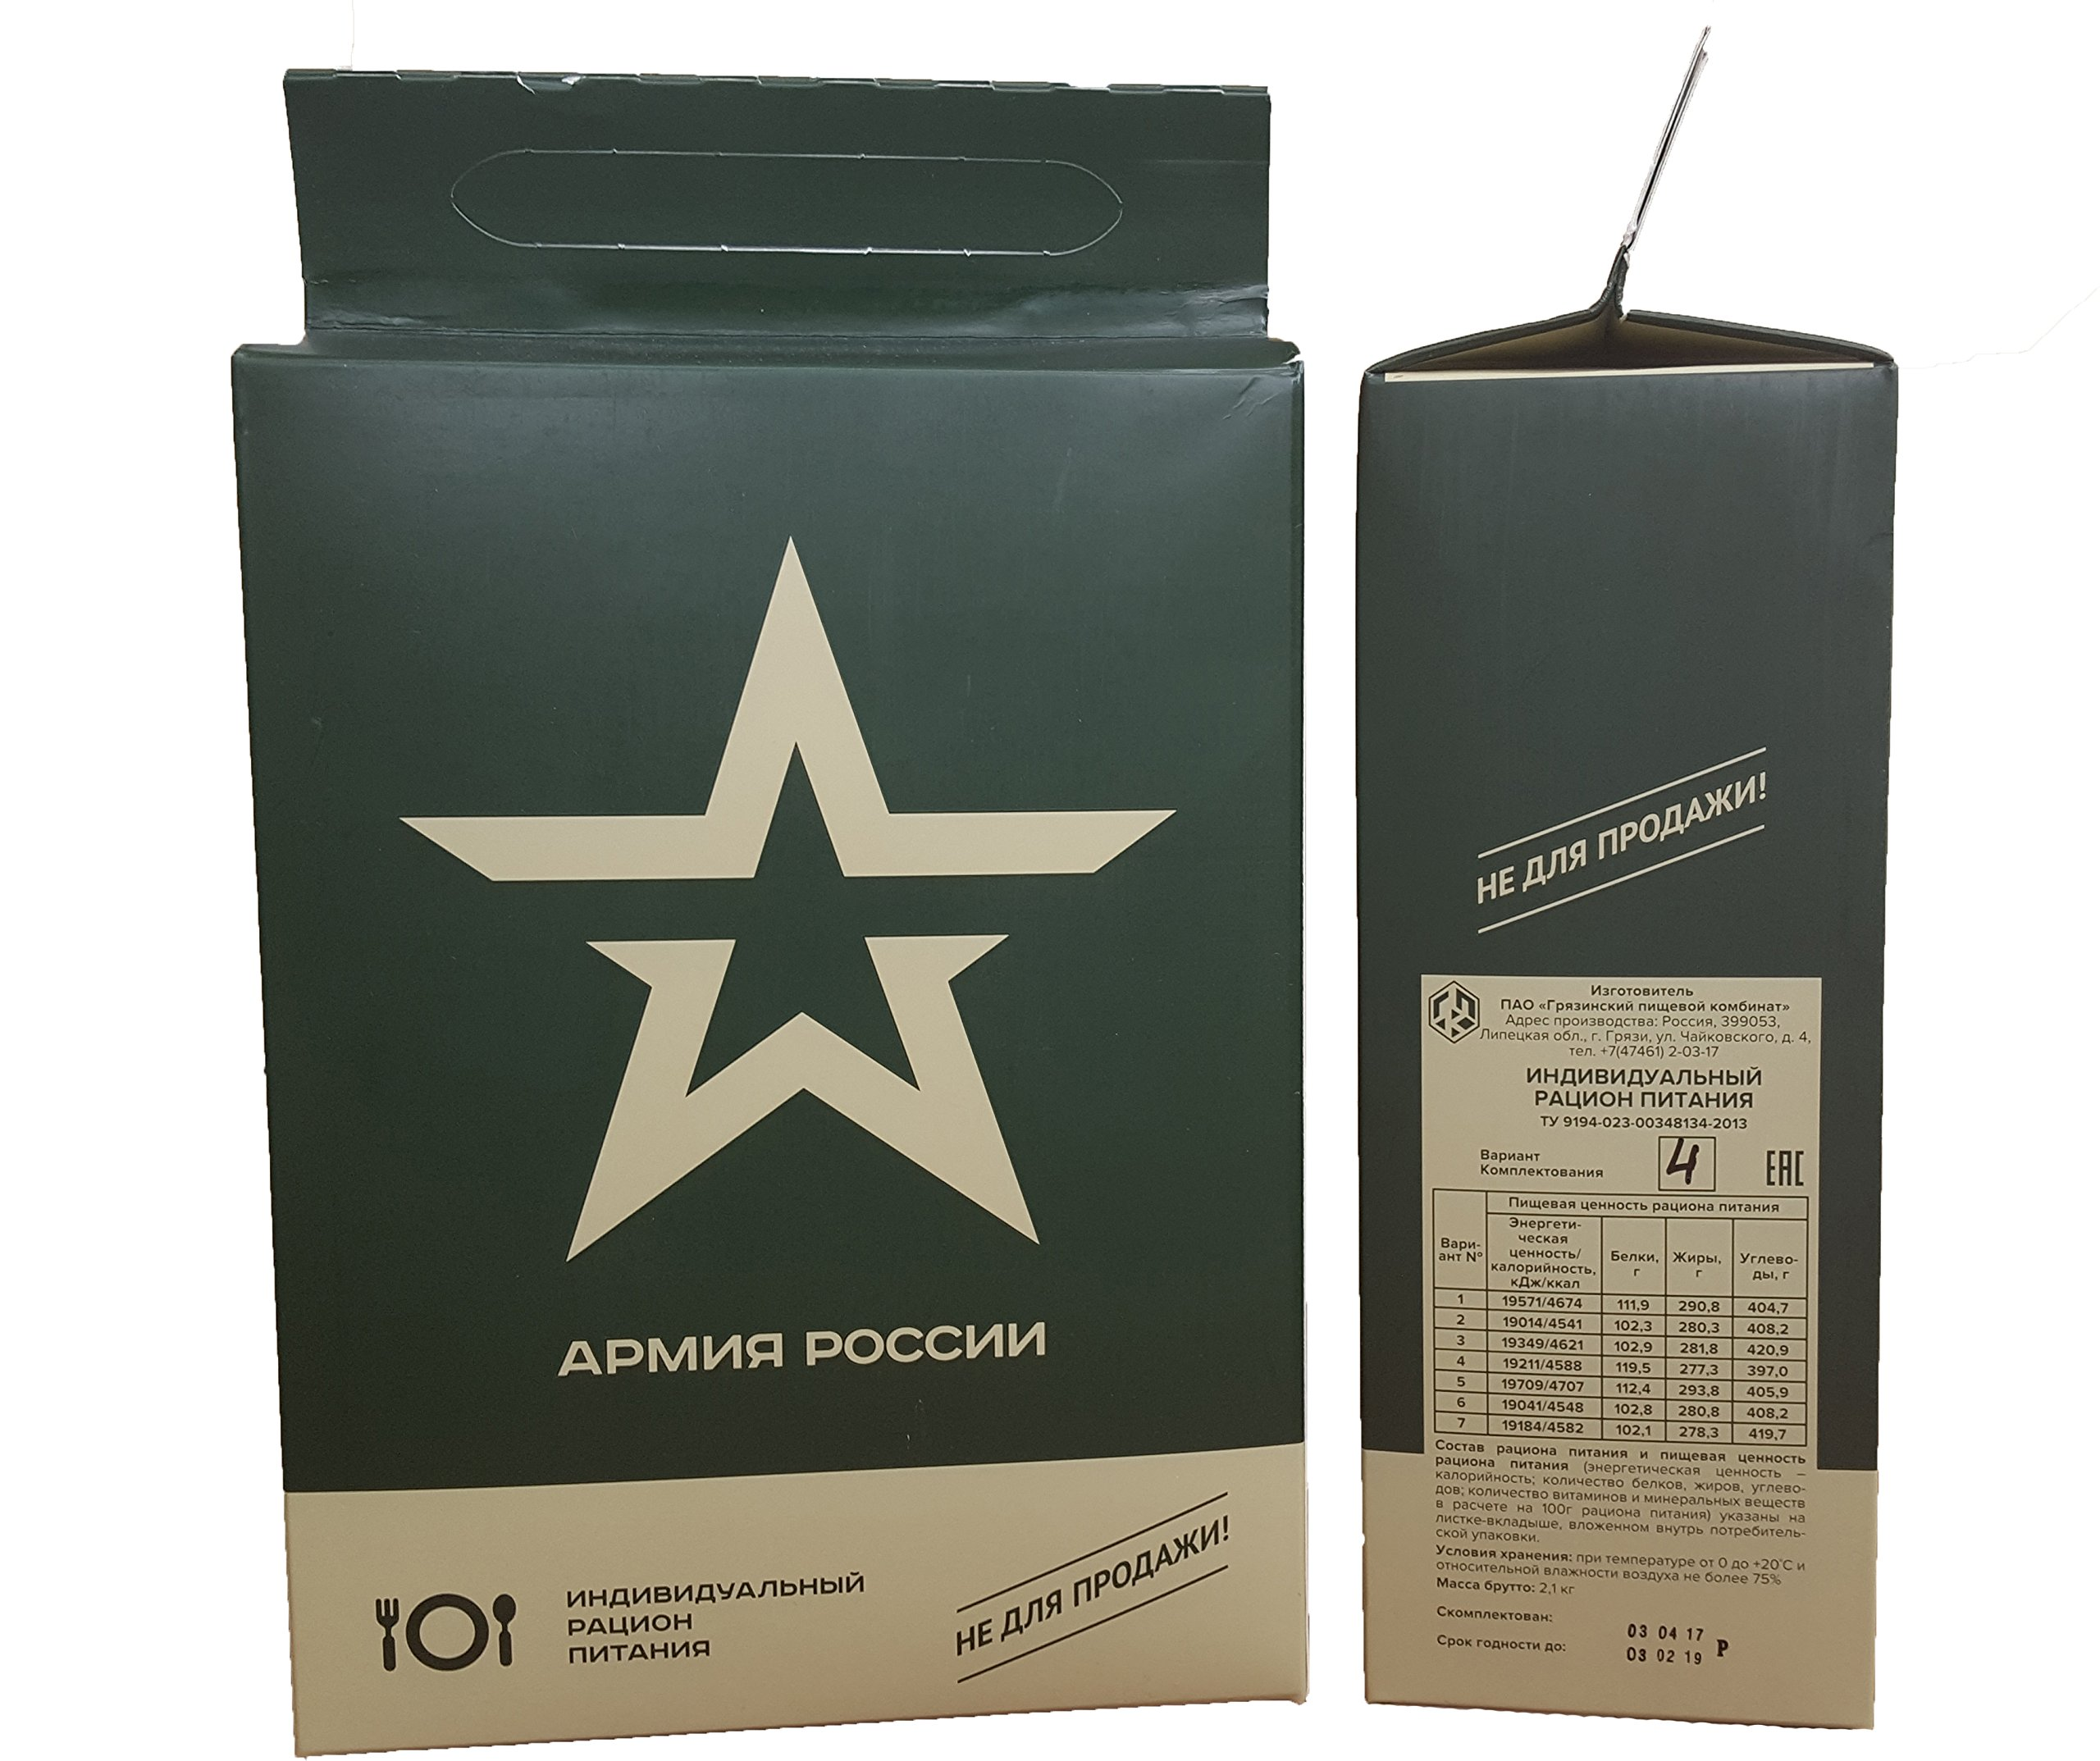 Military Russian Army Food Ration Daily Pack Mre Emergency Rations Exp. date 2018-2019 Voentorg 4.6 LB (2.1 kg) by Russian Army